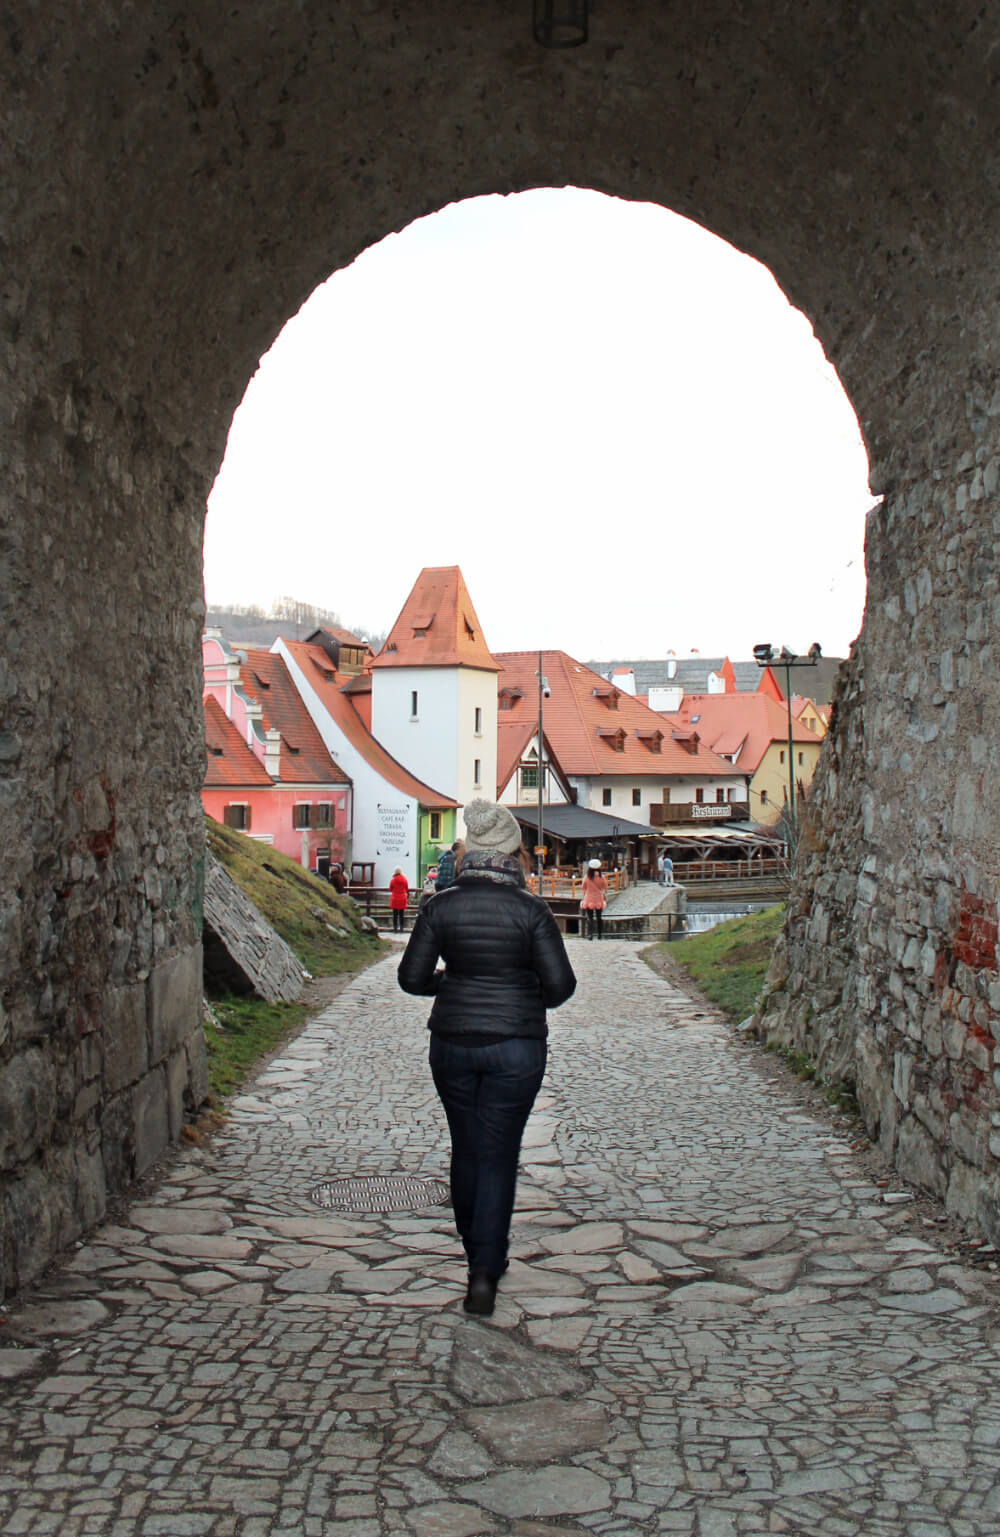 Exploring the castle in Cesky Krumlov, a UNESCO world heritage site in the Czech Republic.